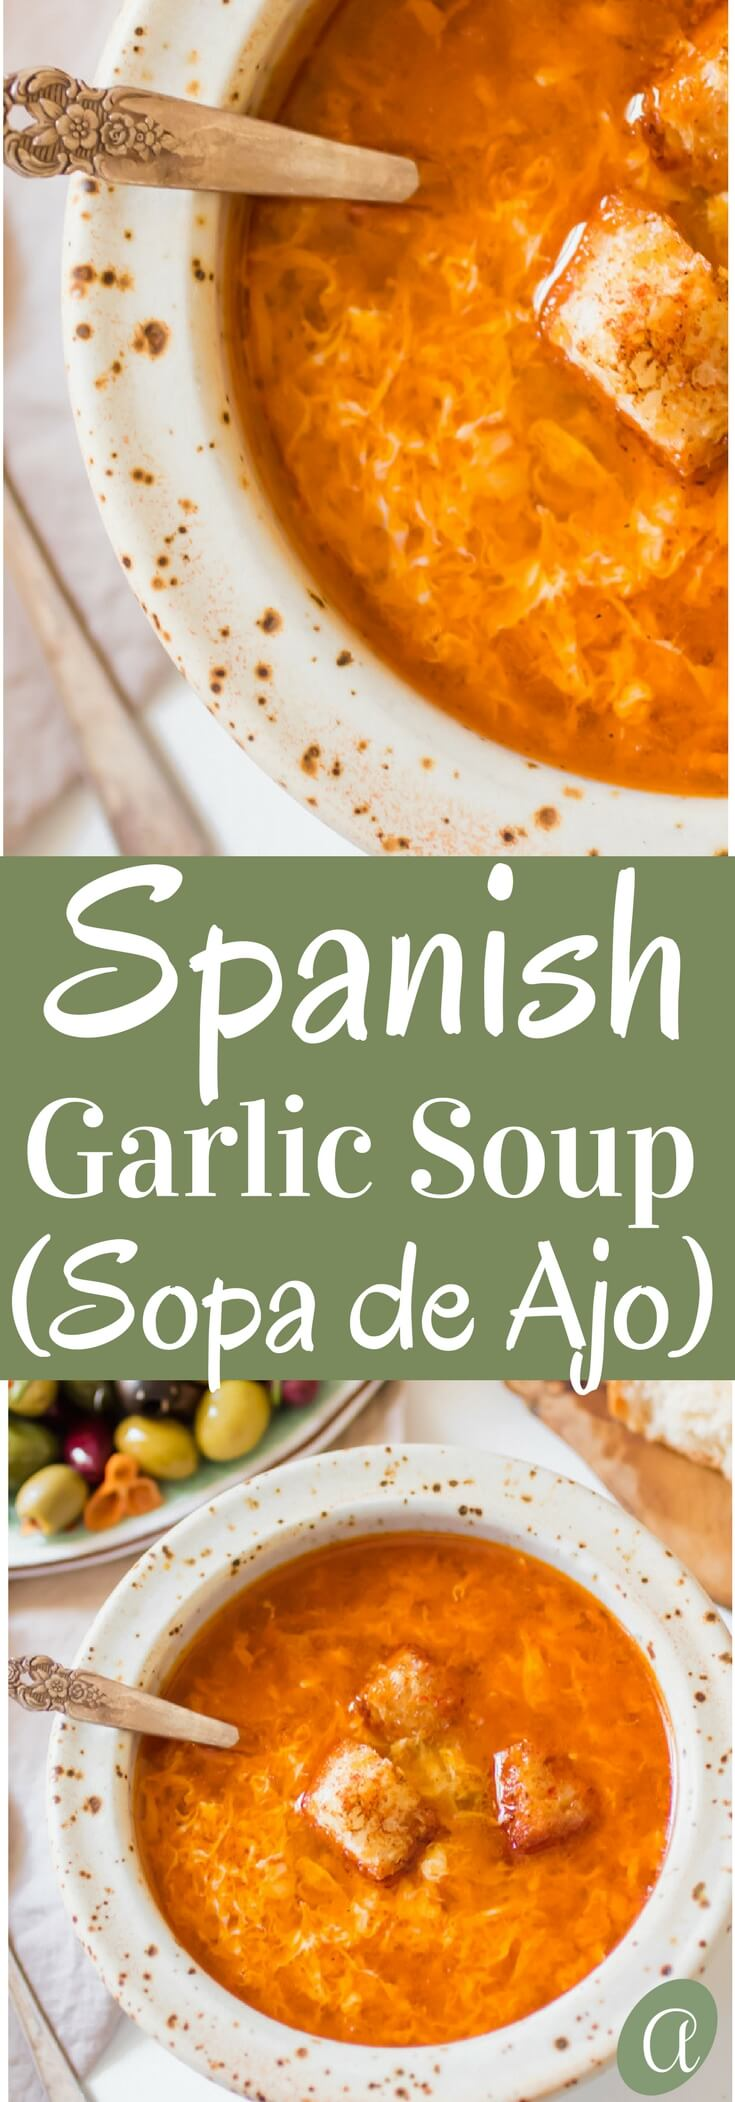 Healthy Spanish garlic soup, Sopa de Ajo. A humble recipe using 7 simple ingredients, ready in 15 minutes. The most nourishing bowl of healthy, delicious restorative soup.